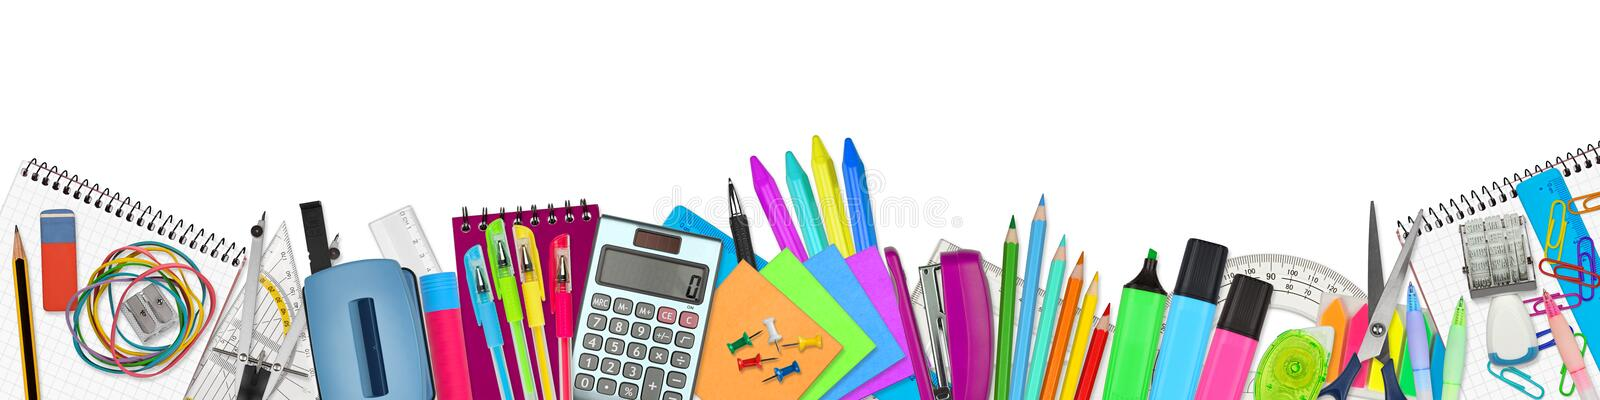 School / office supplies royalty free illustration